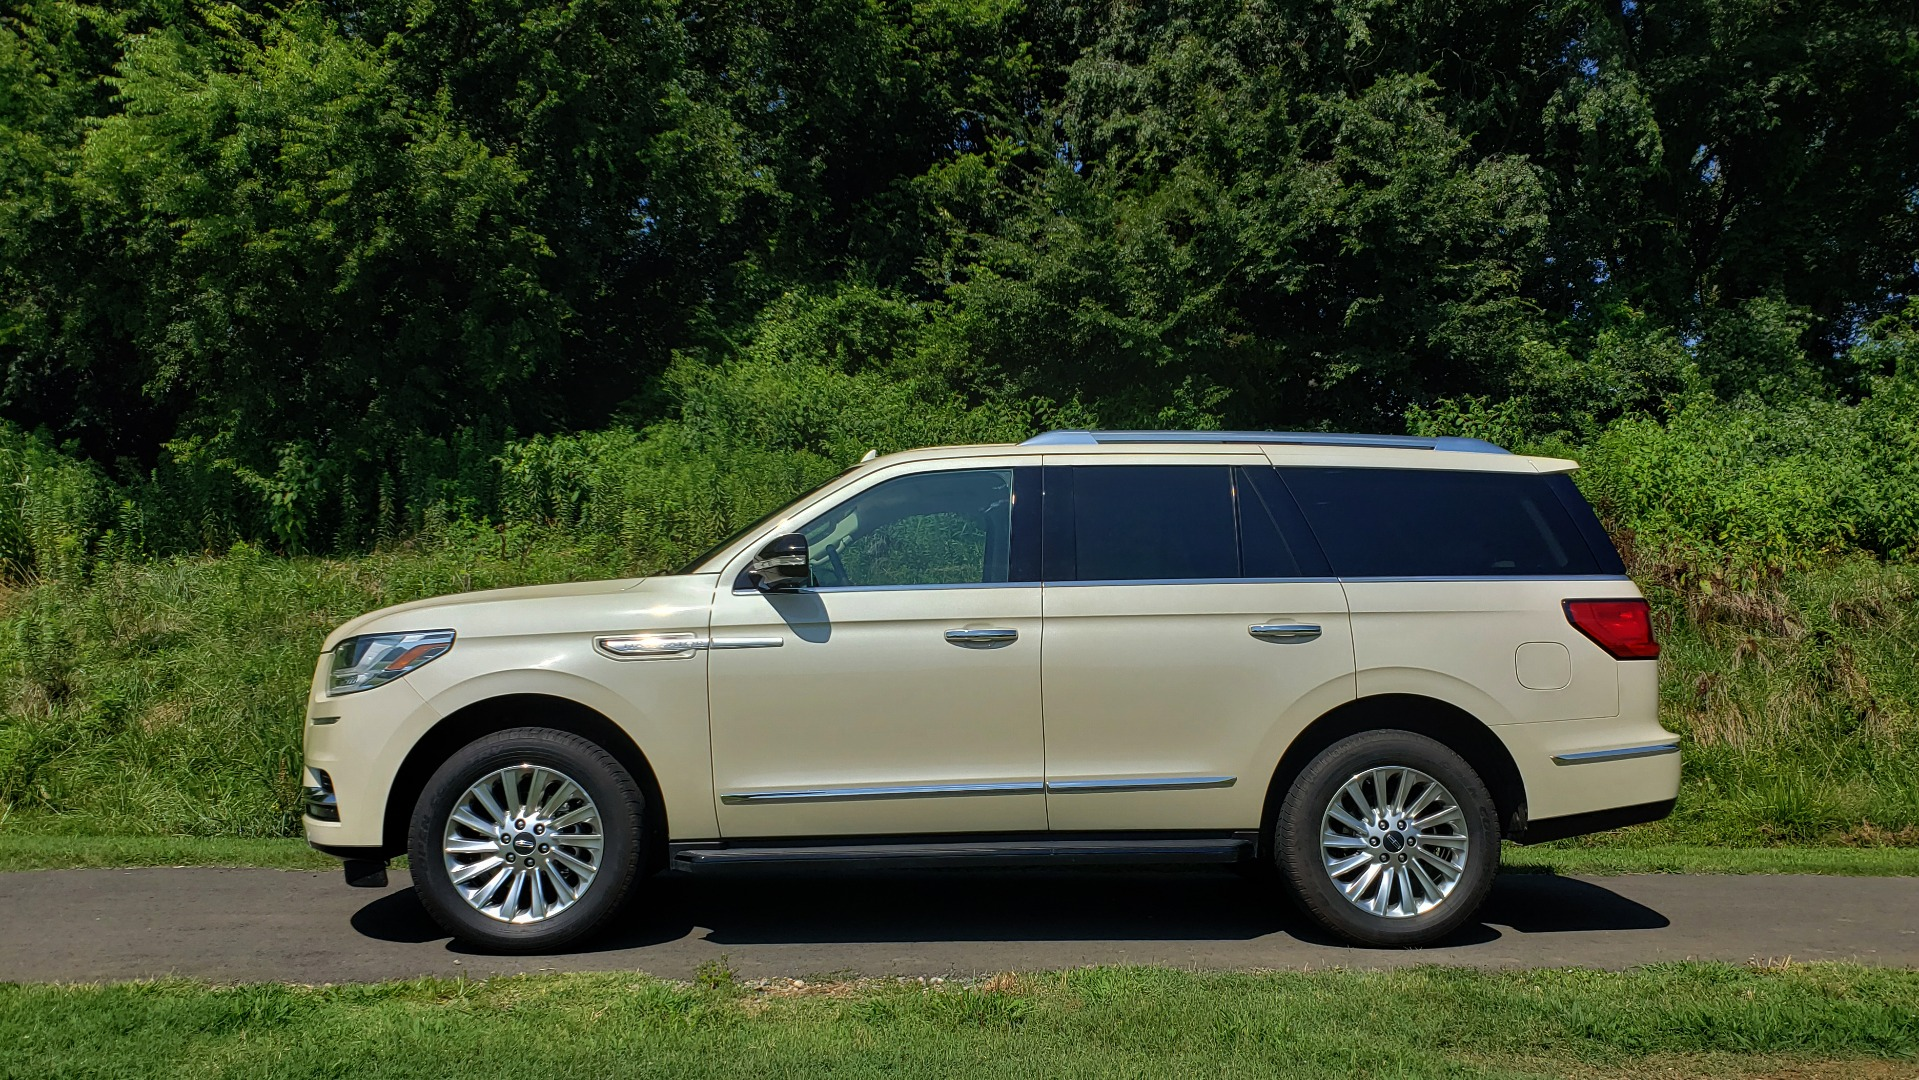 Used 2018 Lincoln NAVIGATOR PREMIERE 4X2 / TWIN-TURBO V6 / NAV / 3-ROW / REARVIEW for sale Sold at Formula Imports in Charlotte NC 28227 3